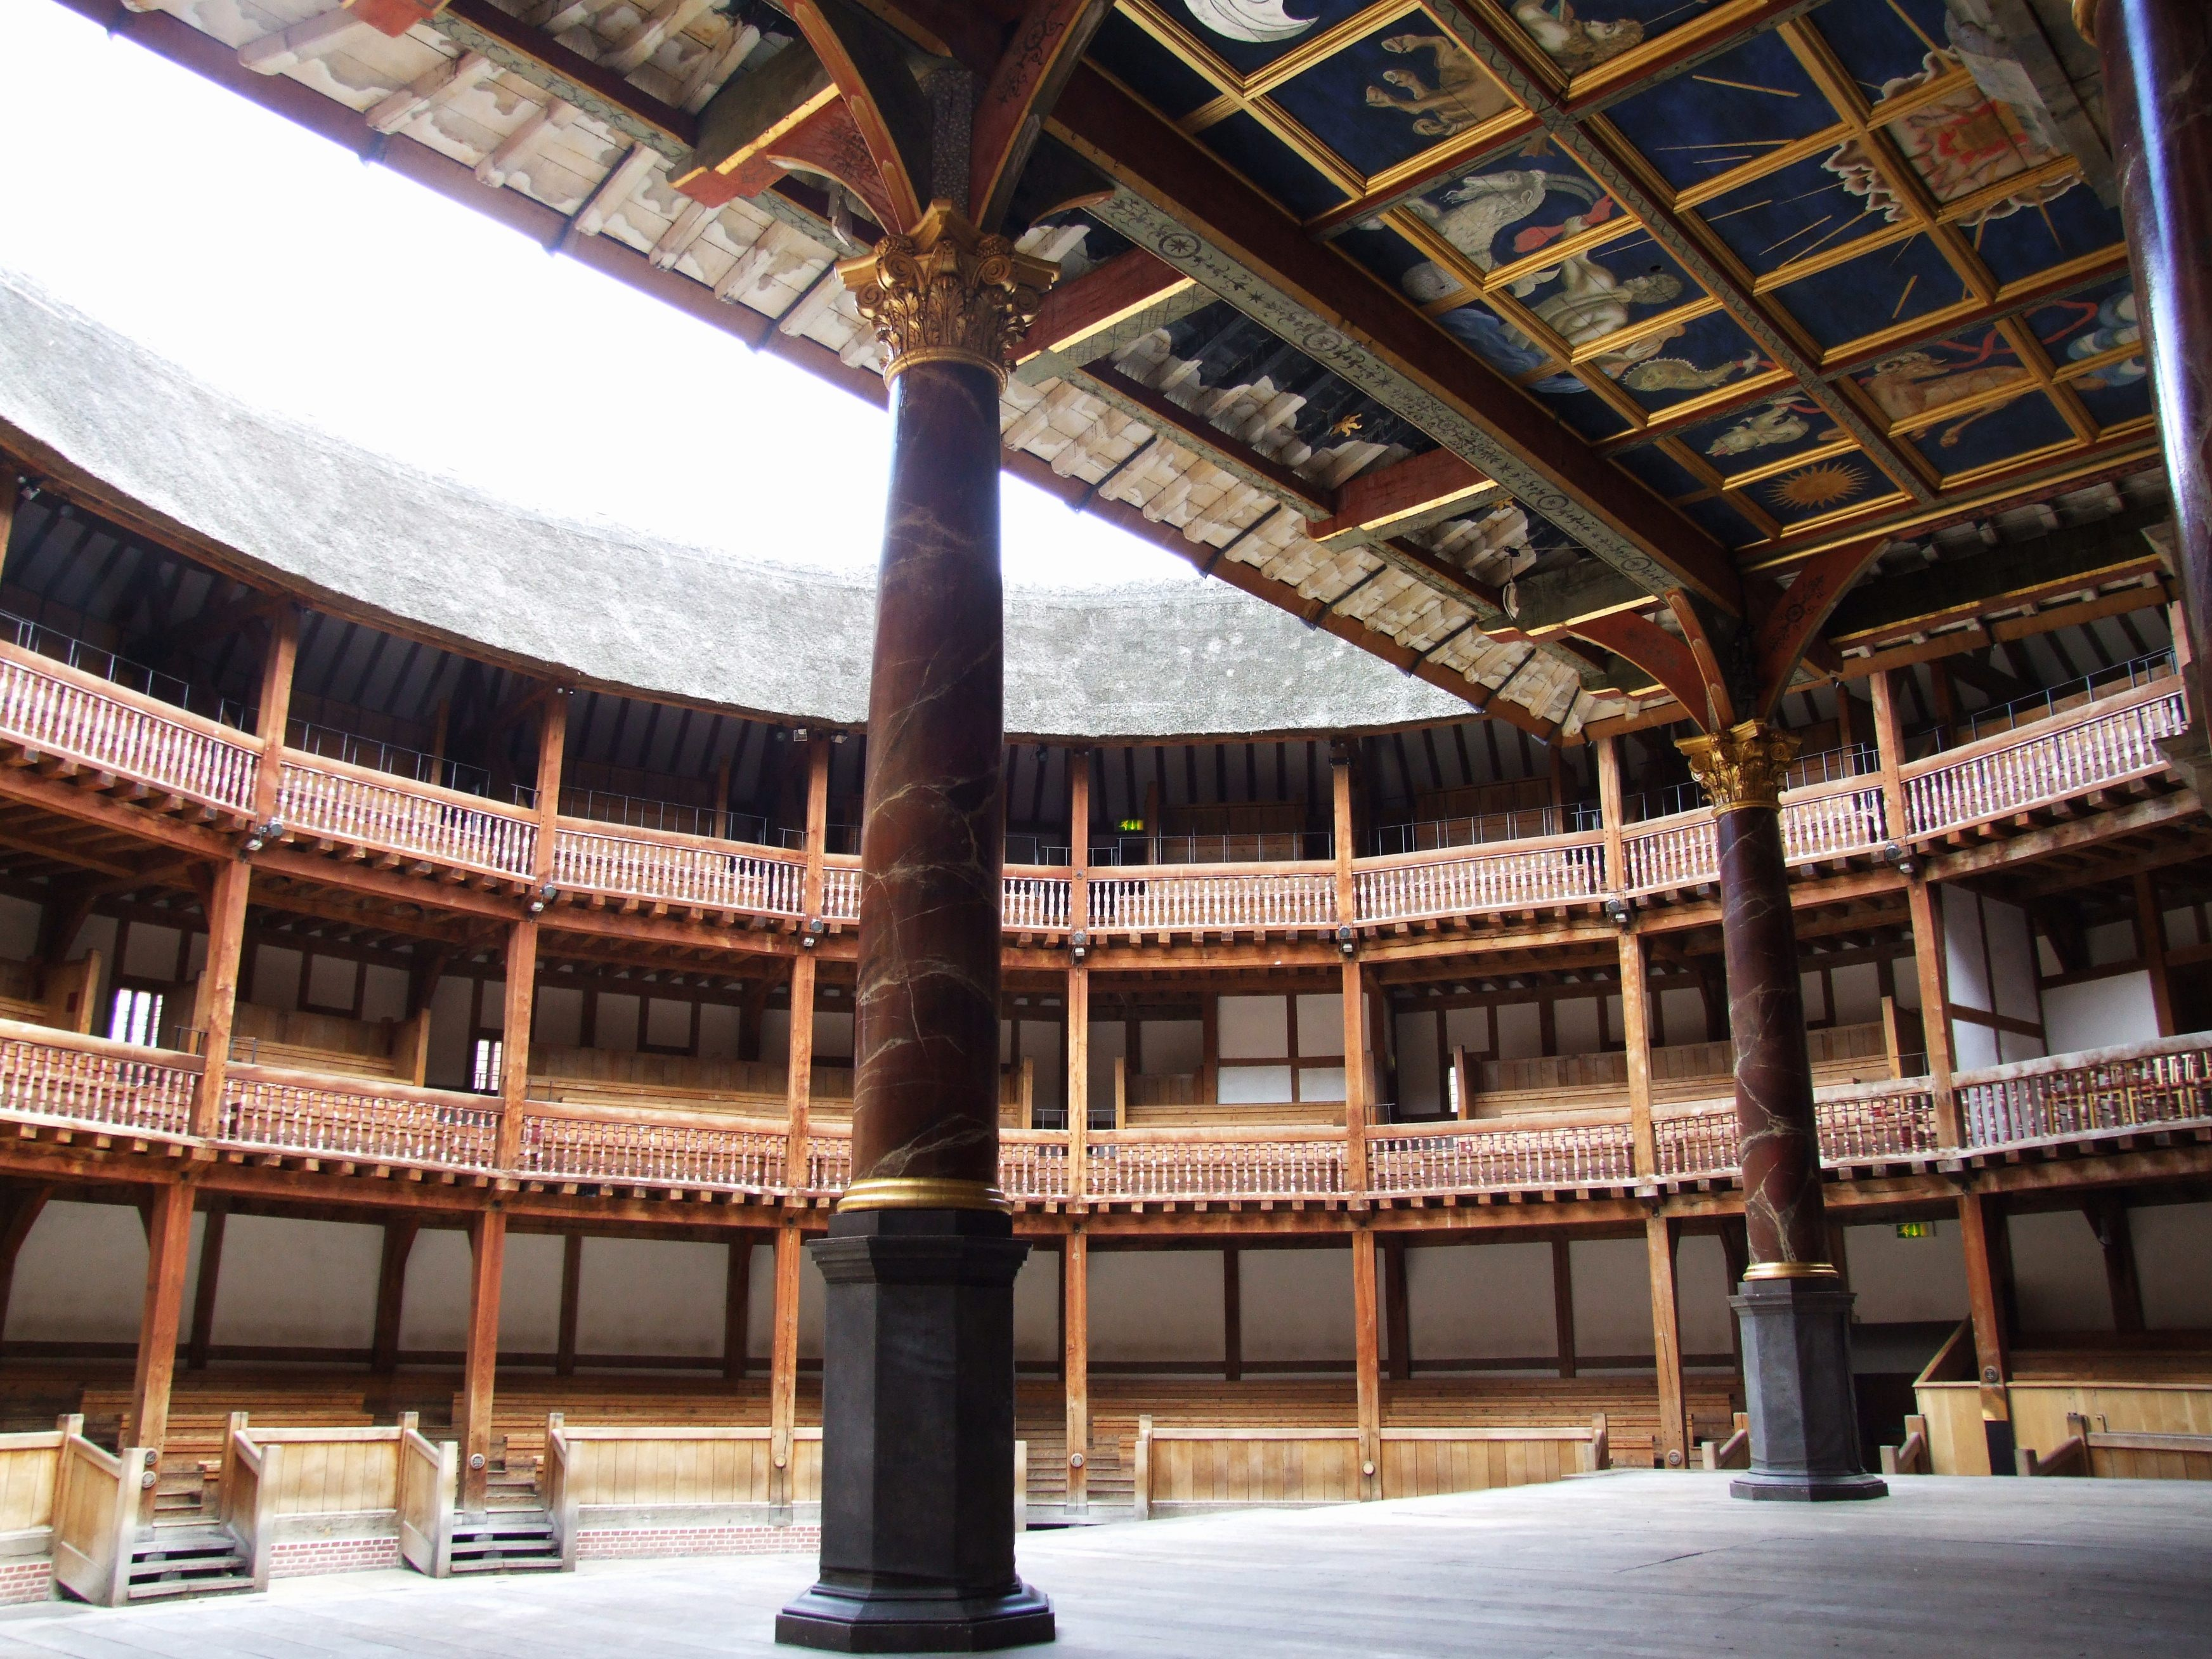 shakespeares globe theater Shakespeare's globe theatre is one of the most famous theatres in the world it is the place that housed the most important plays we study today.